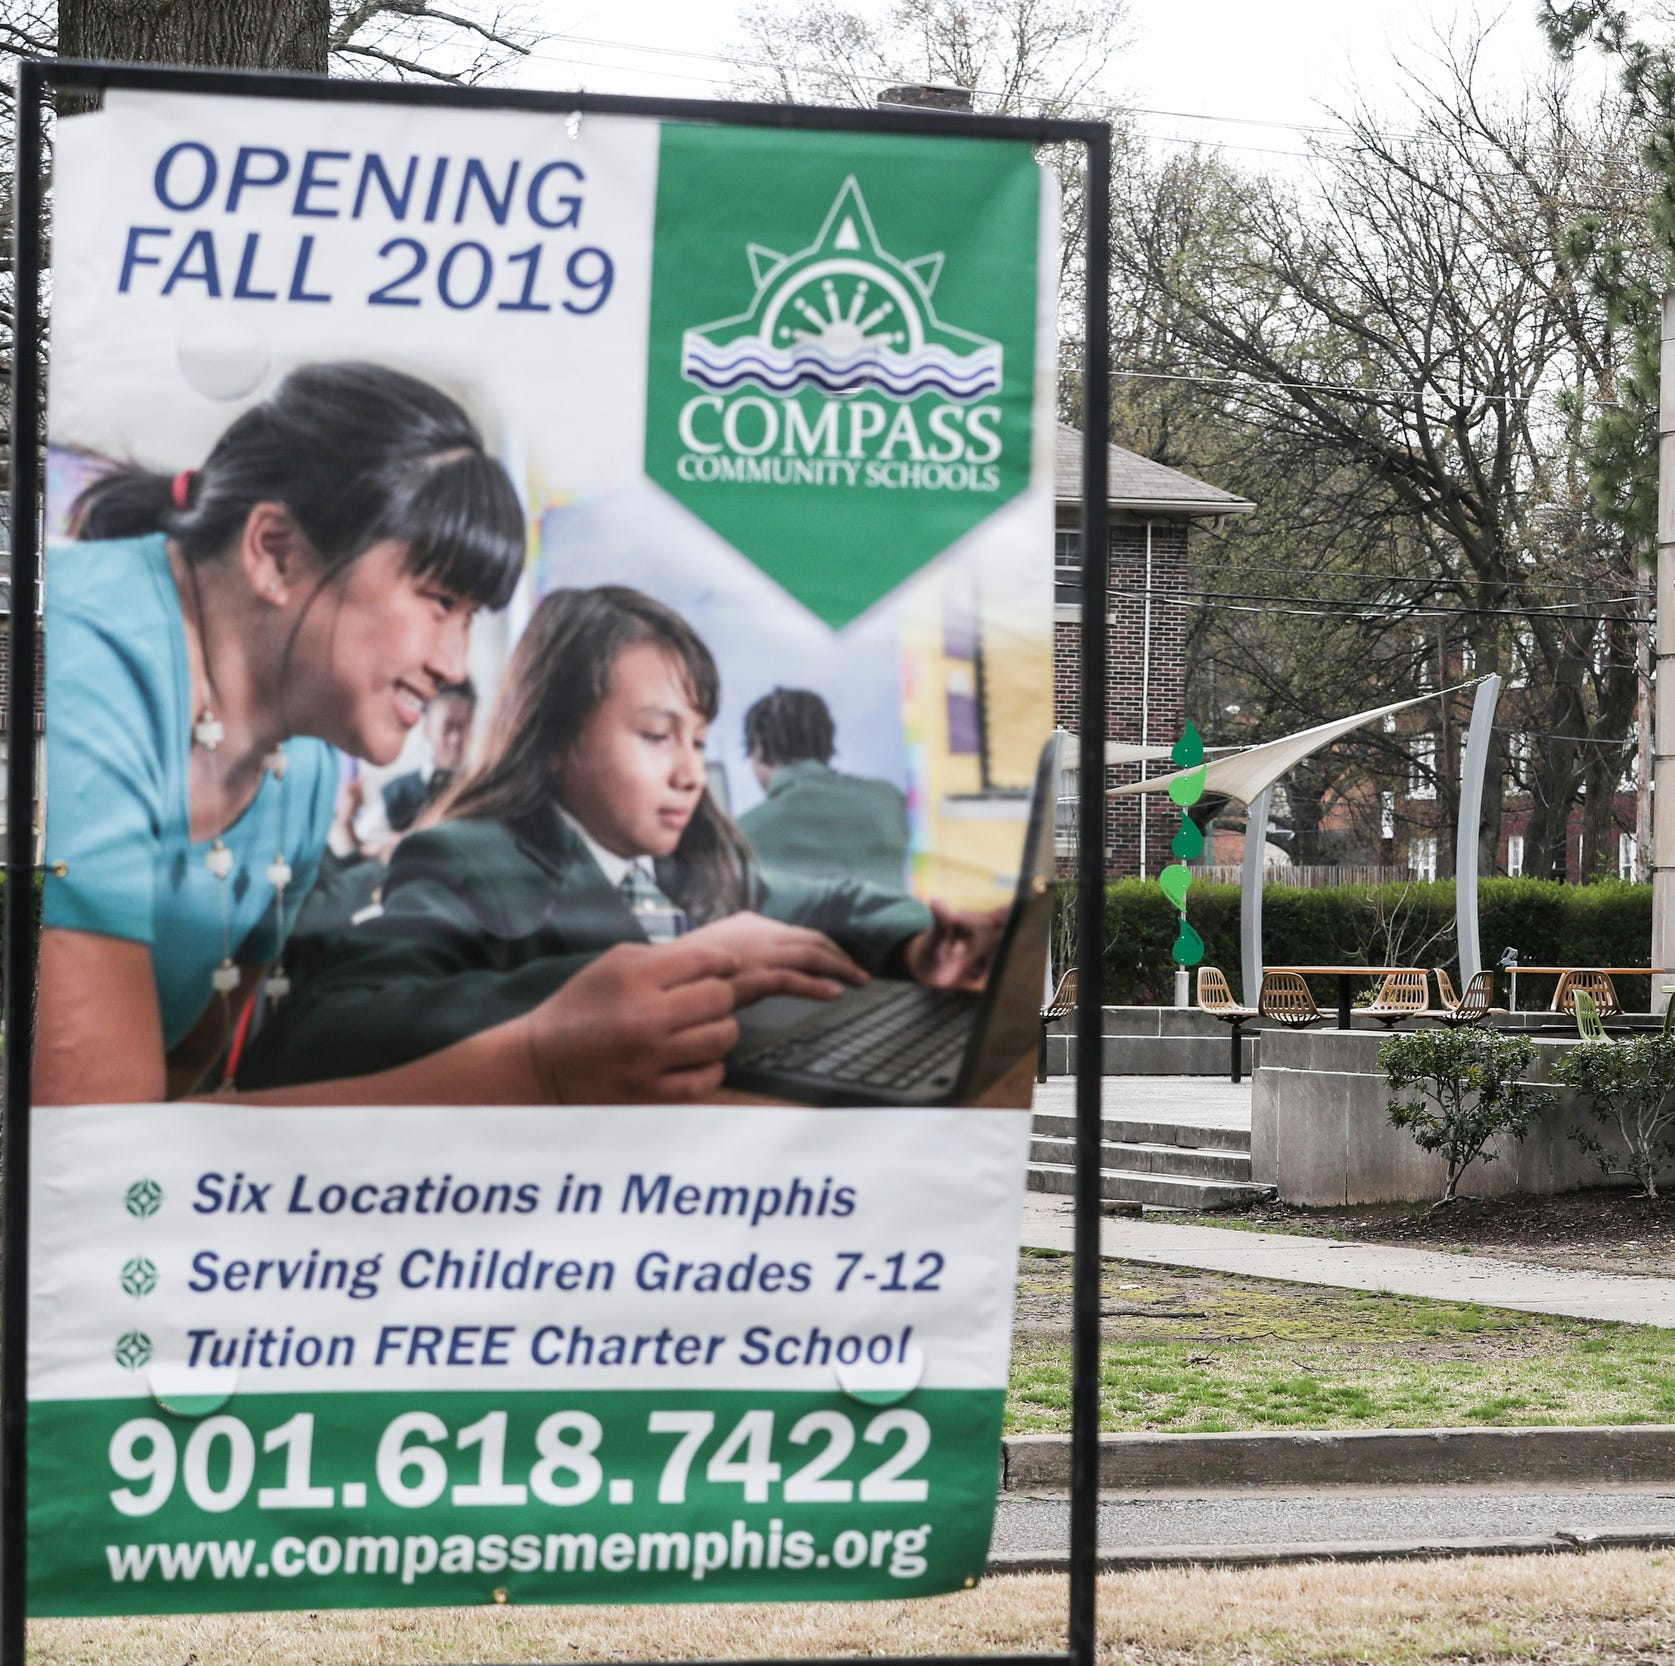 Memphis charter schools respond to legal threat over Catholic Church's morality clause